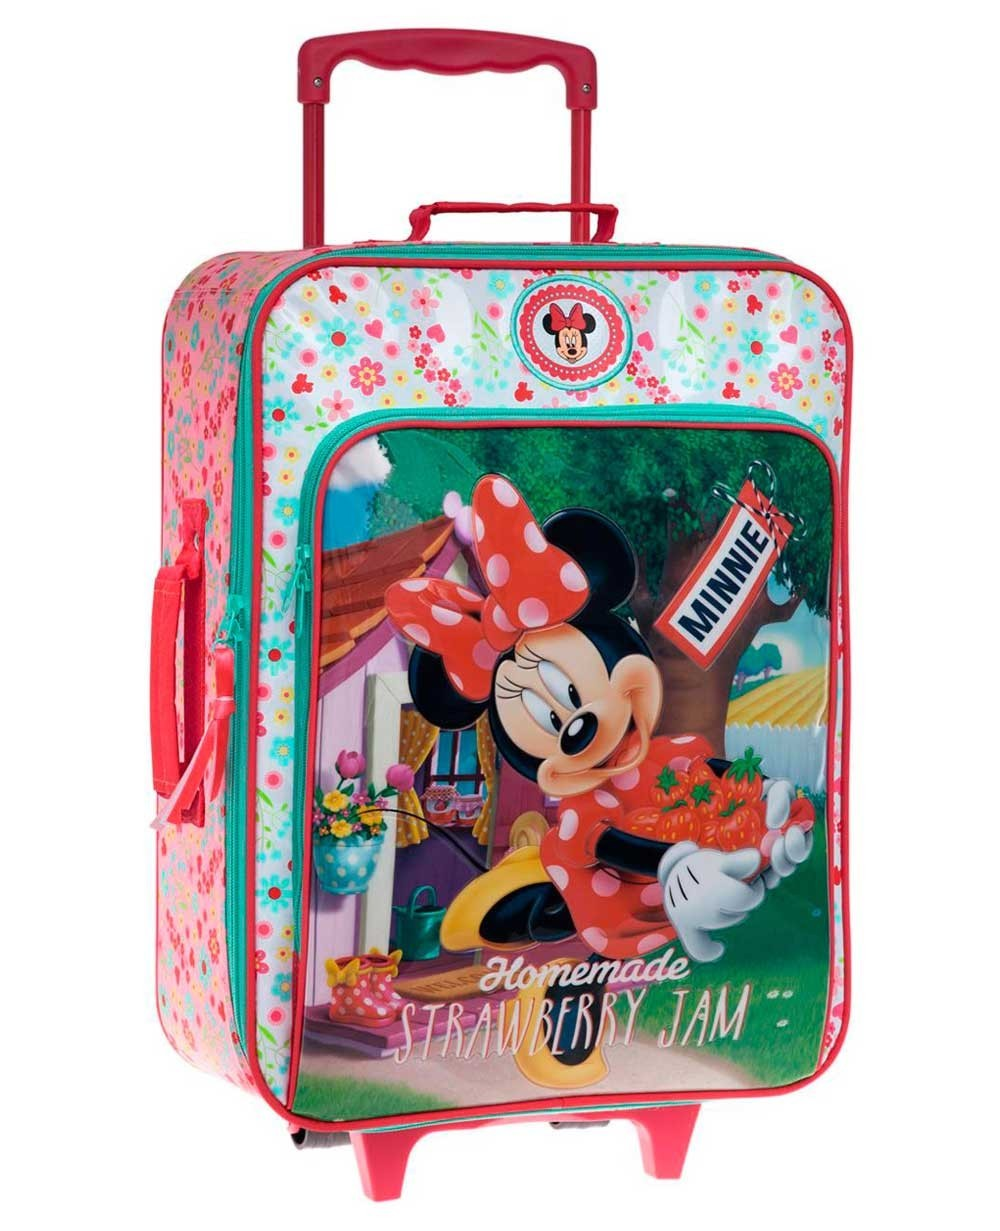 Disney Strawberry Jam Maleta de mano Rosa